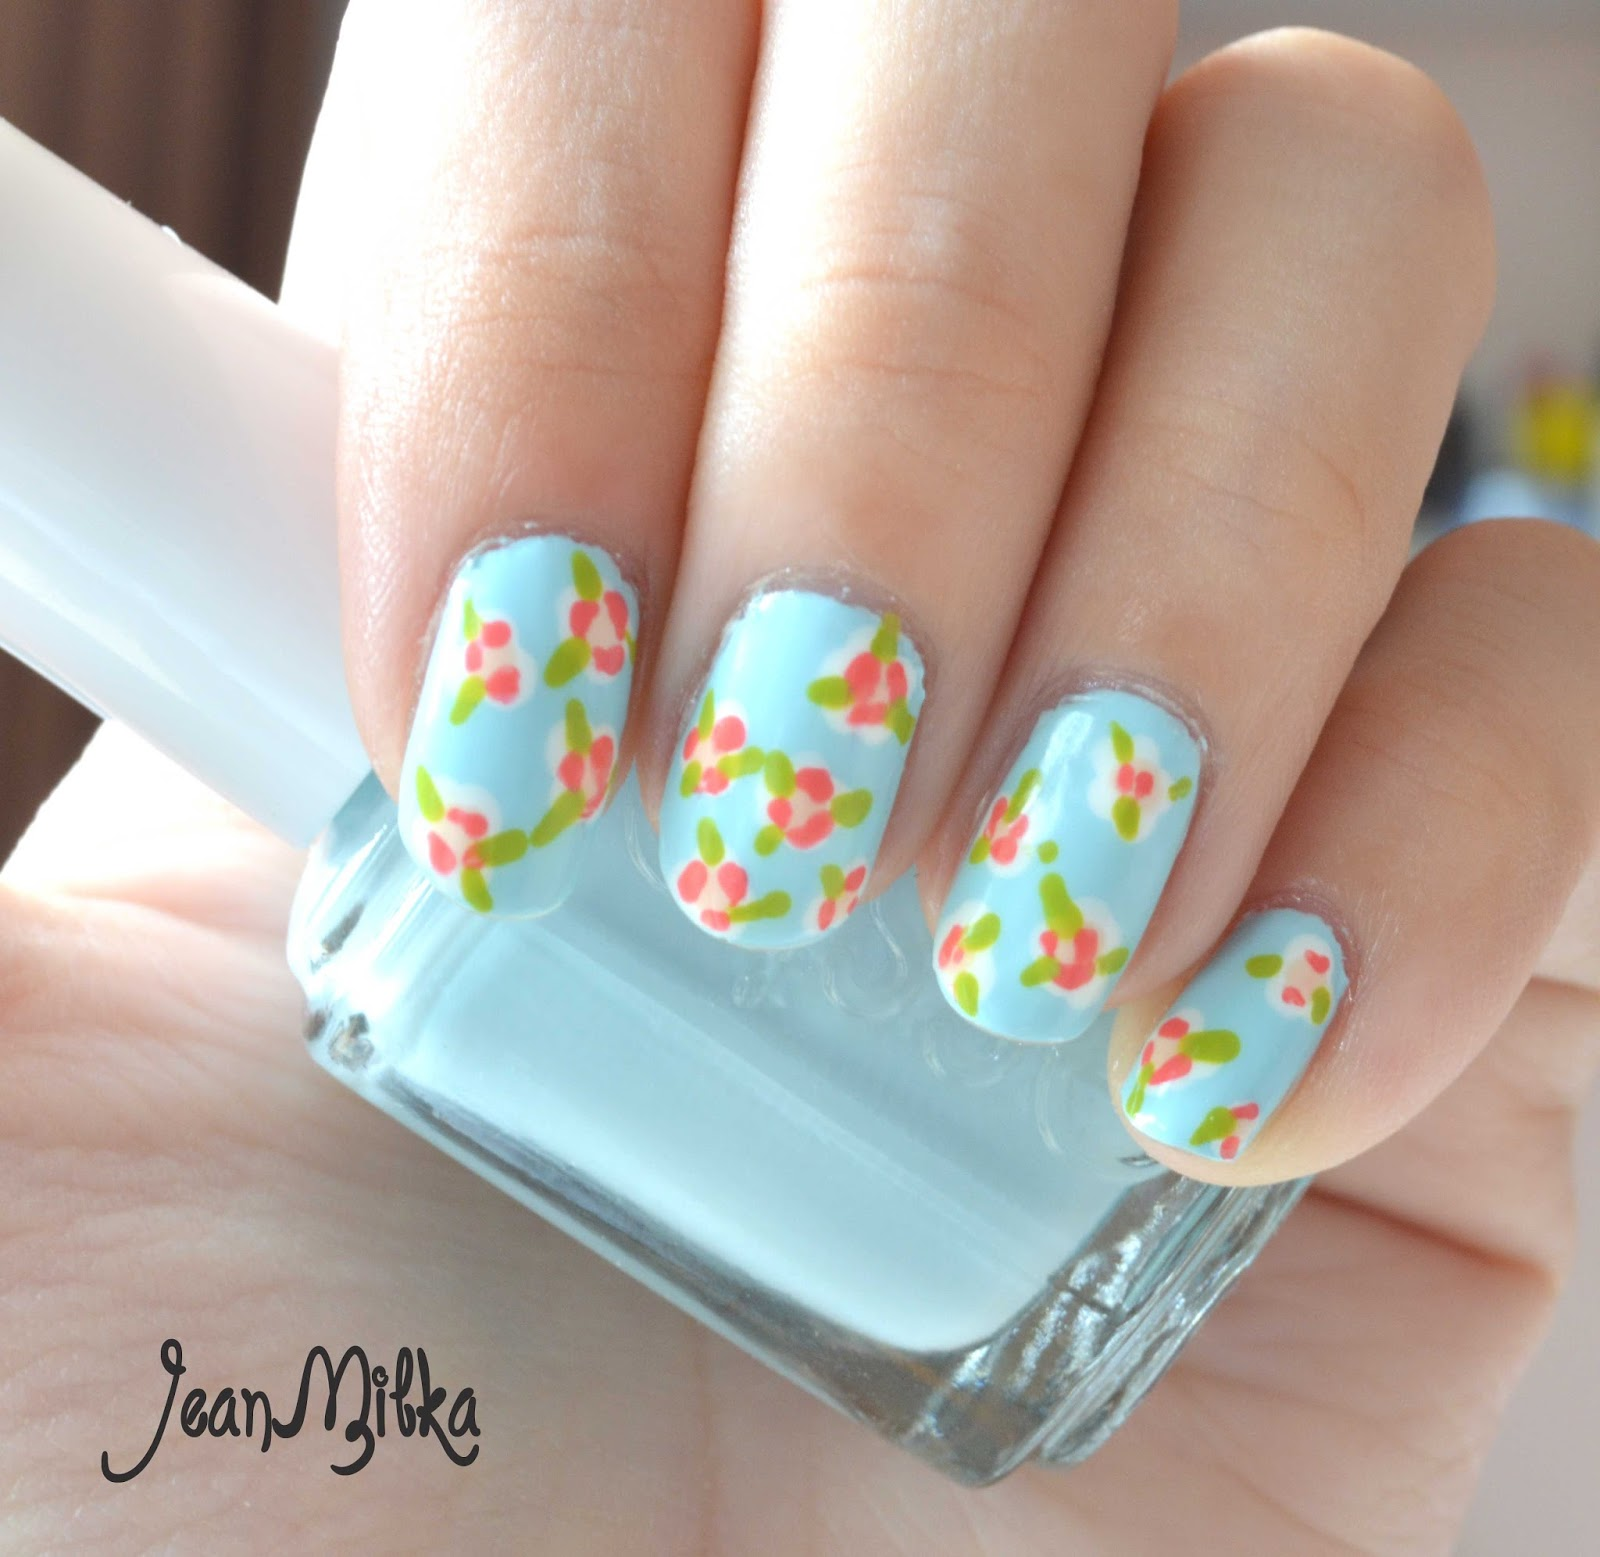 Pink Manicure Summer Flowers Nail Art Tutorial For Beginners